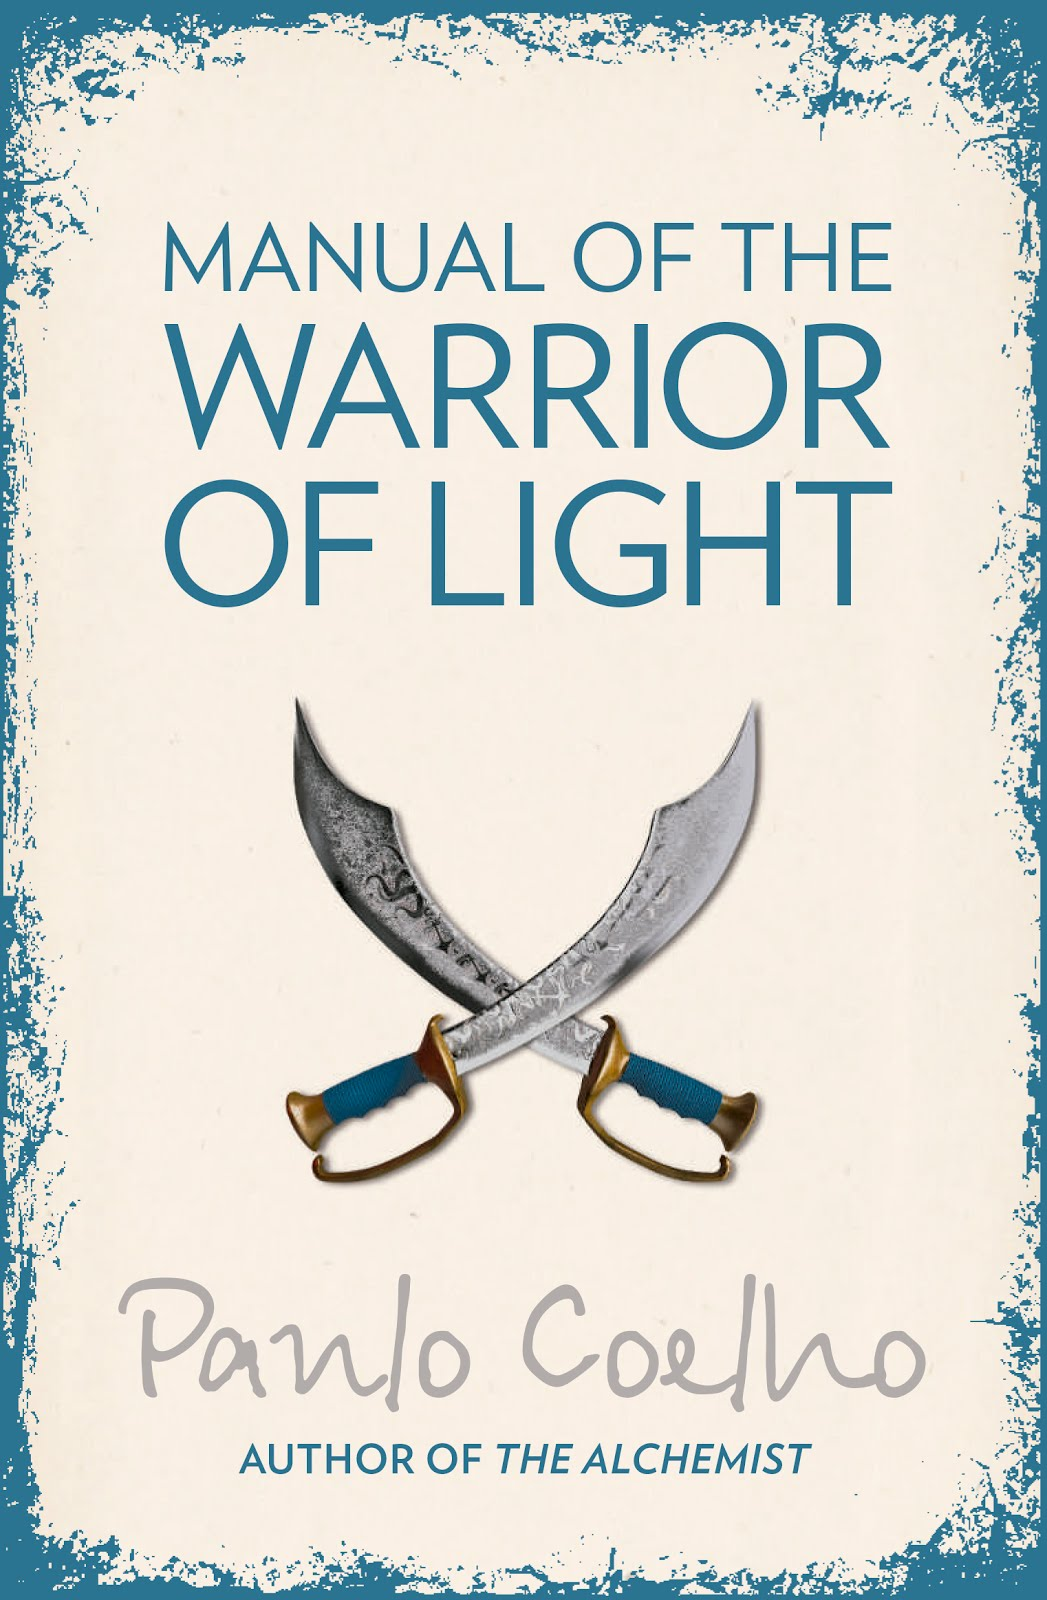 manual-of-the-warrior-of-light